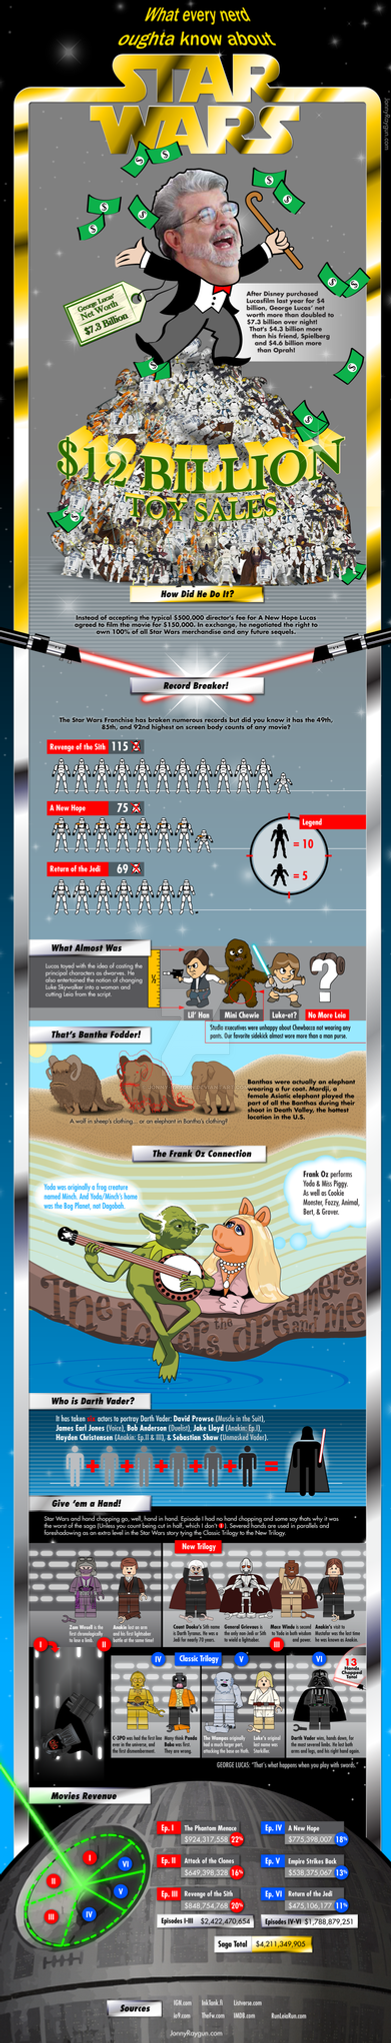 Star Wars Infographic by Jonny-Raygun